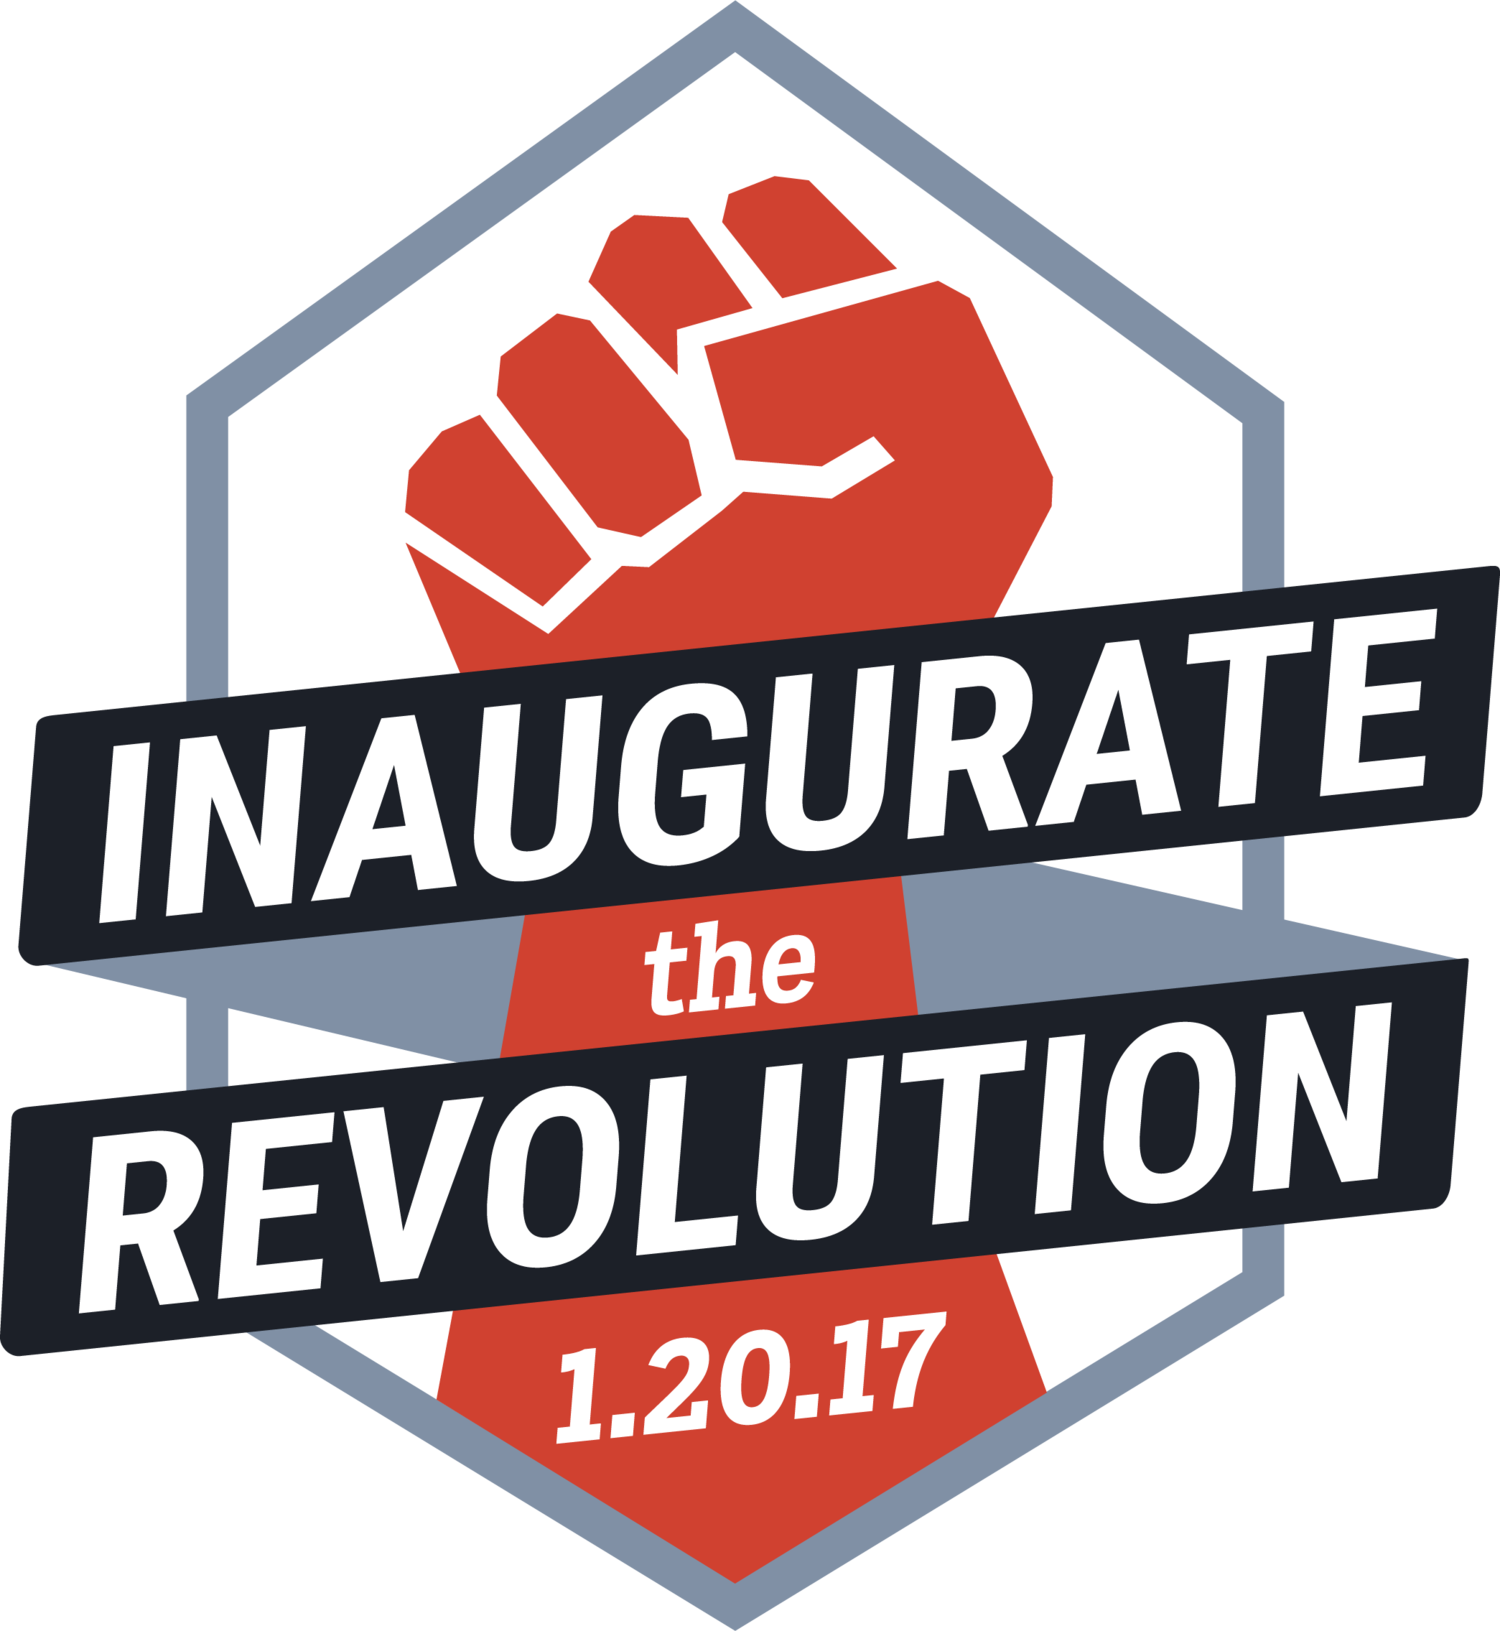 Inaugurate the Revolution